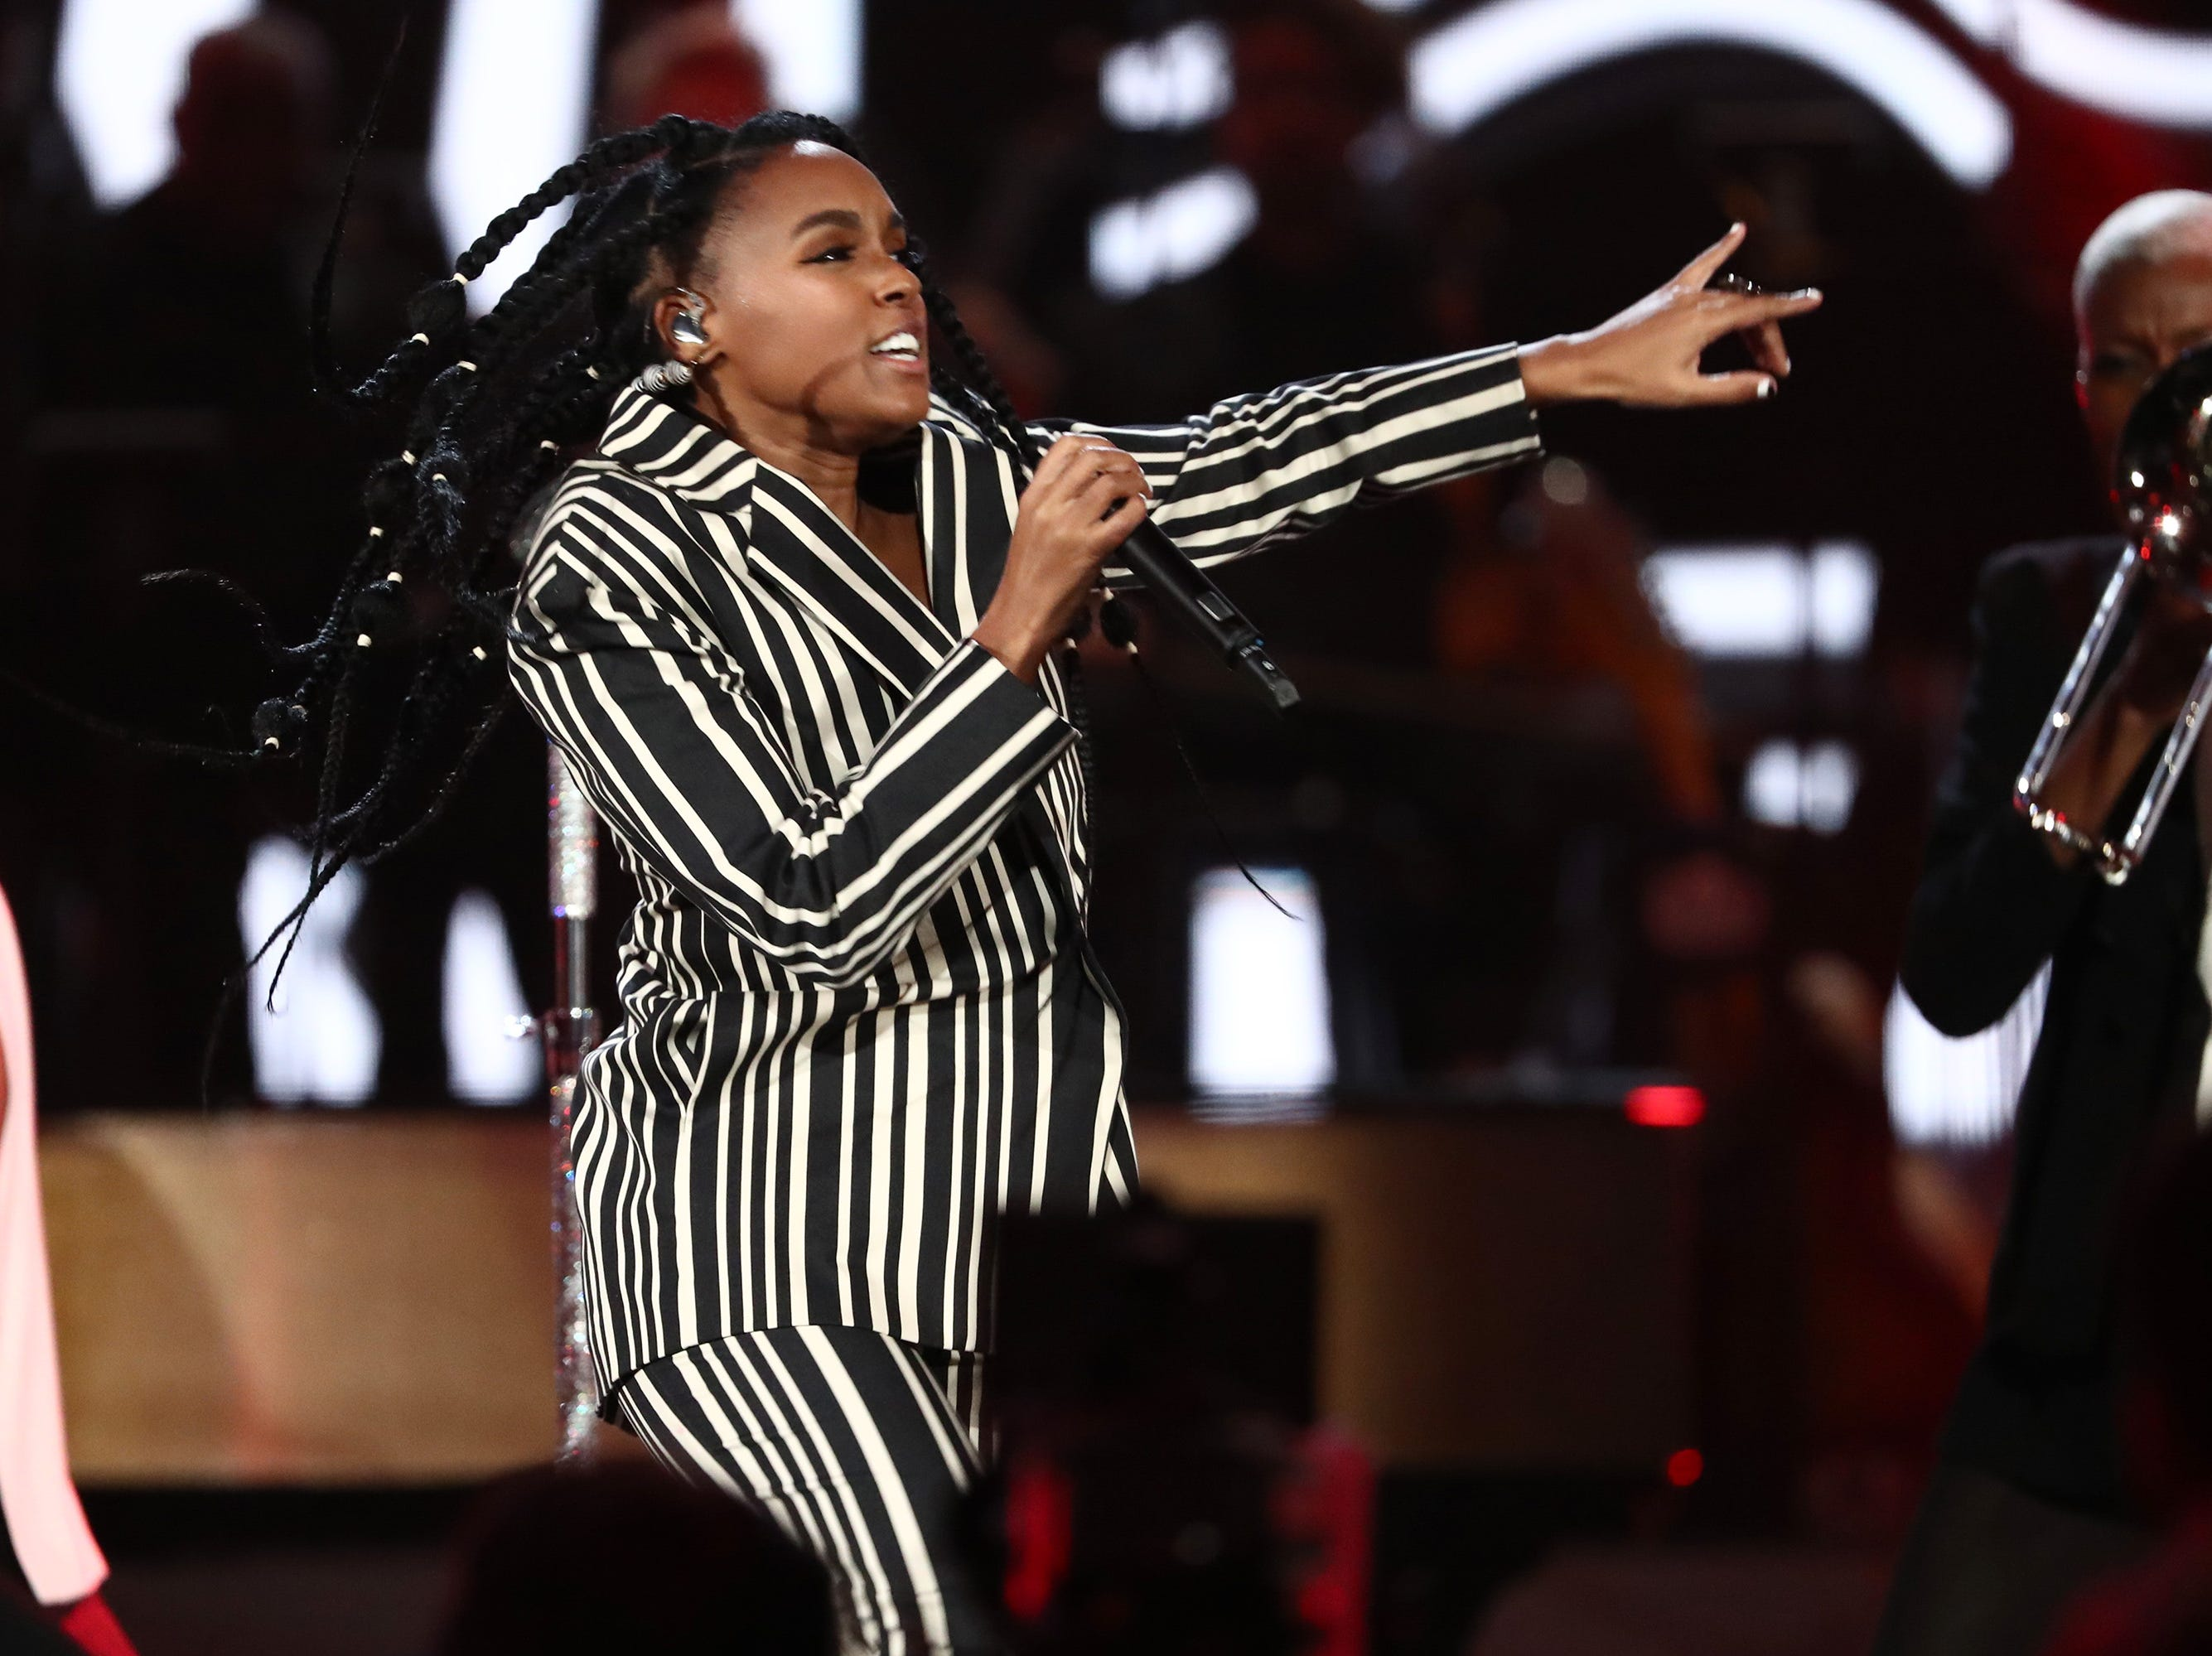 """LOS ANGELES, CA - JANUARY 13:  Janelle Monae performs at """"Aretha! A Grammy Celebration For the Queen Of Soul"""" at the Shrine Auditorium on Jan. 13, 2019, in Los Angeles, Calif."""